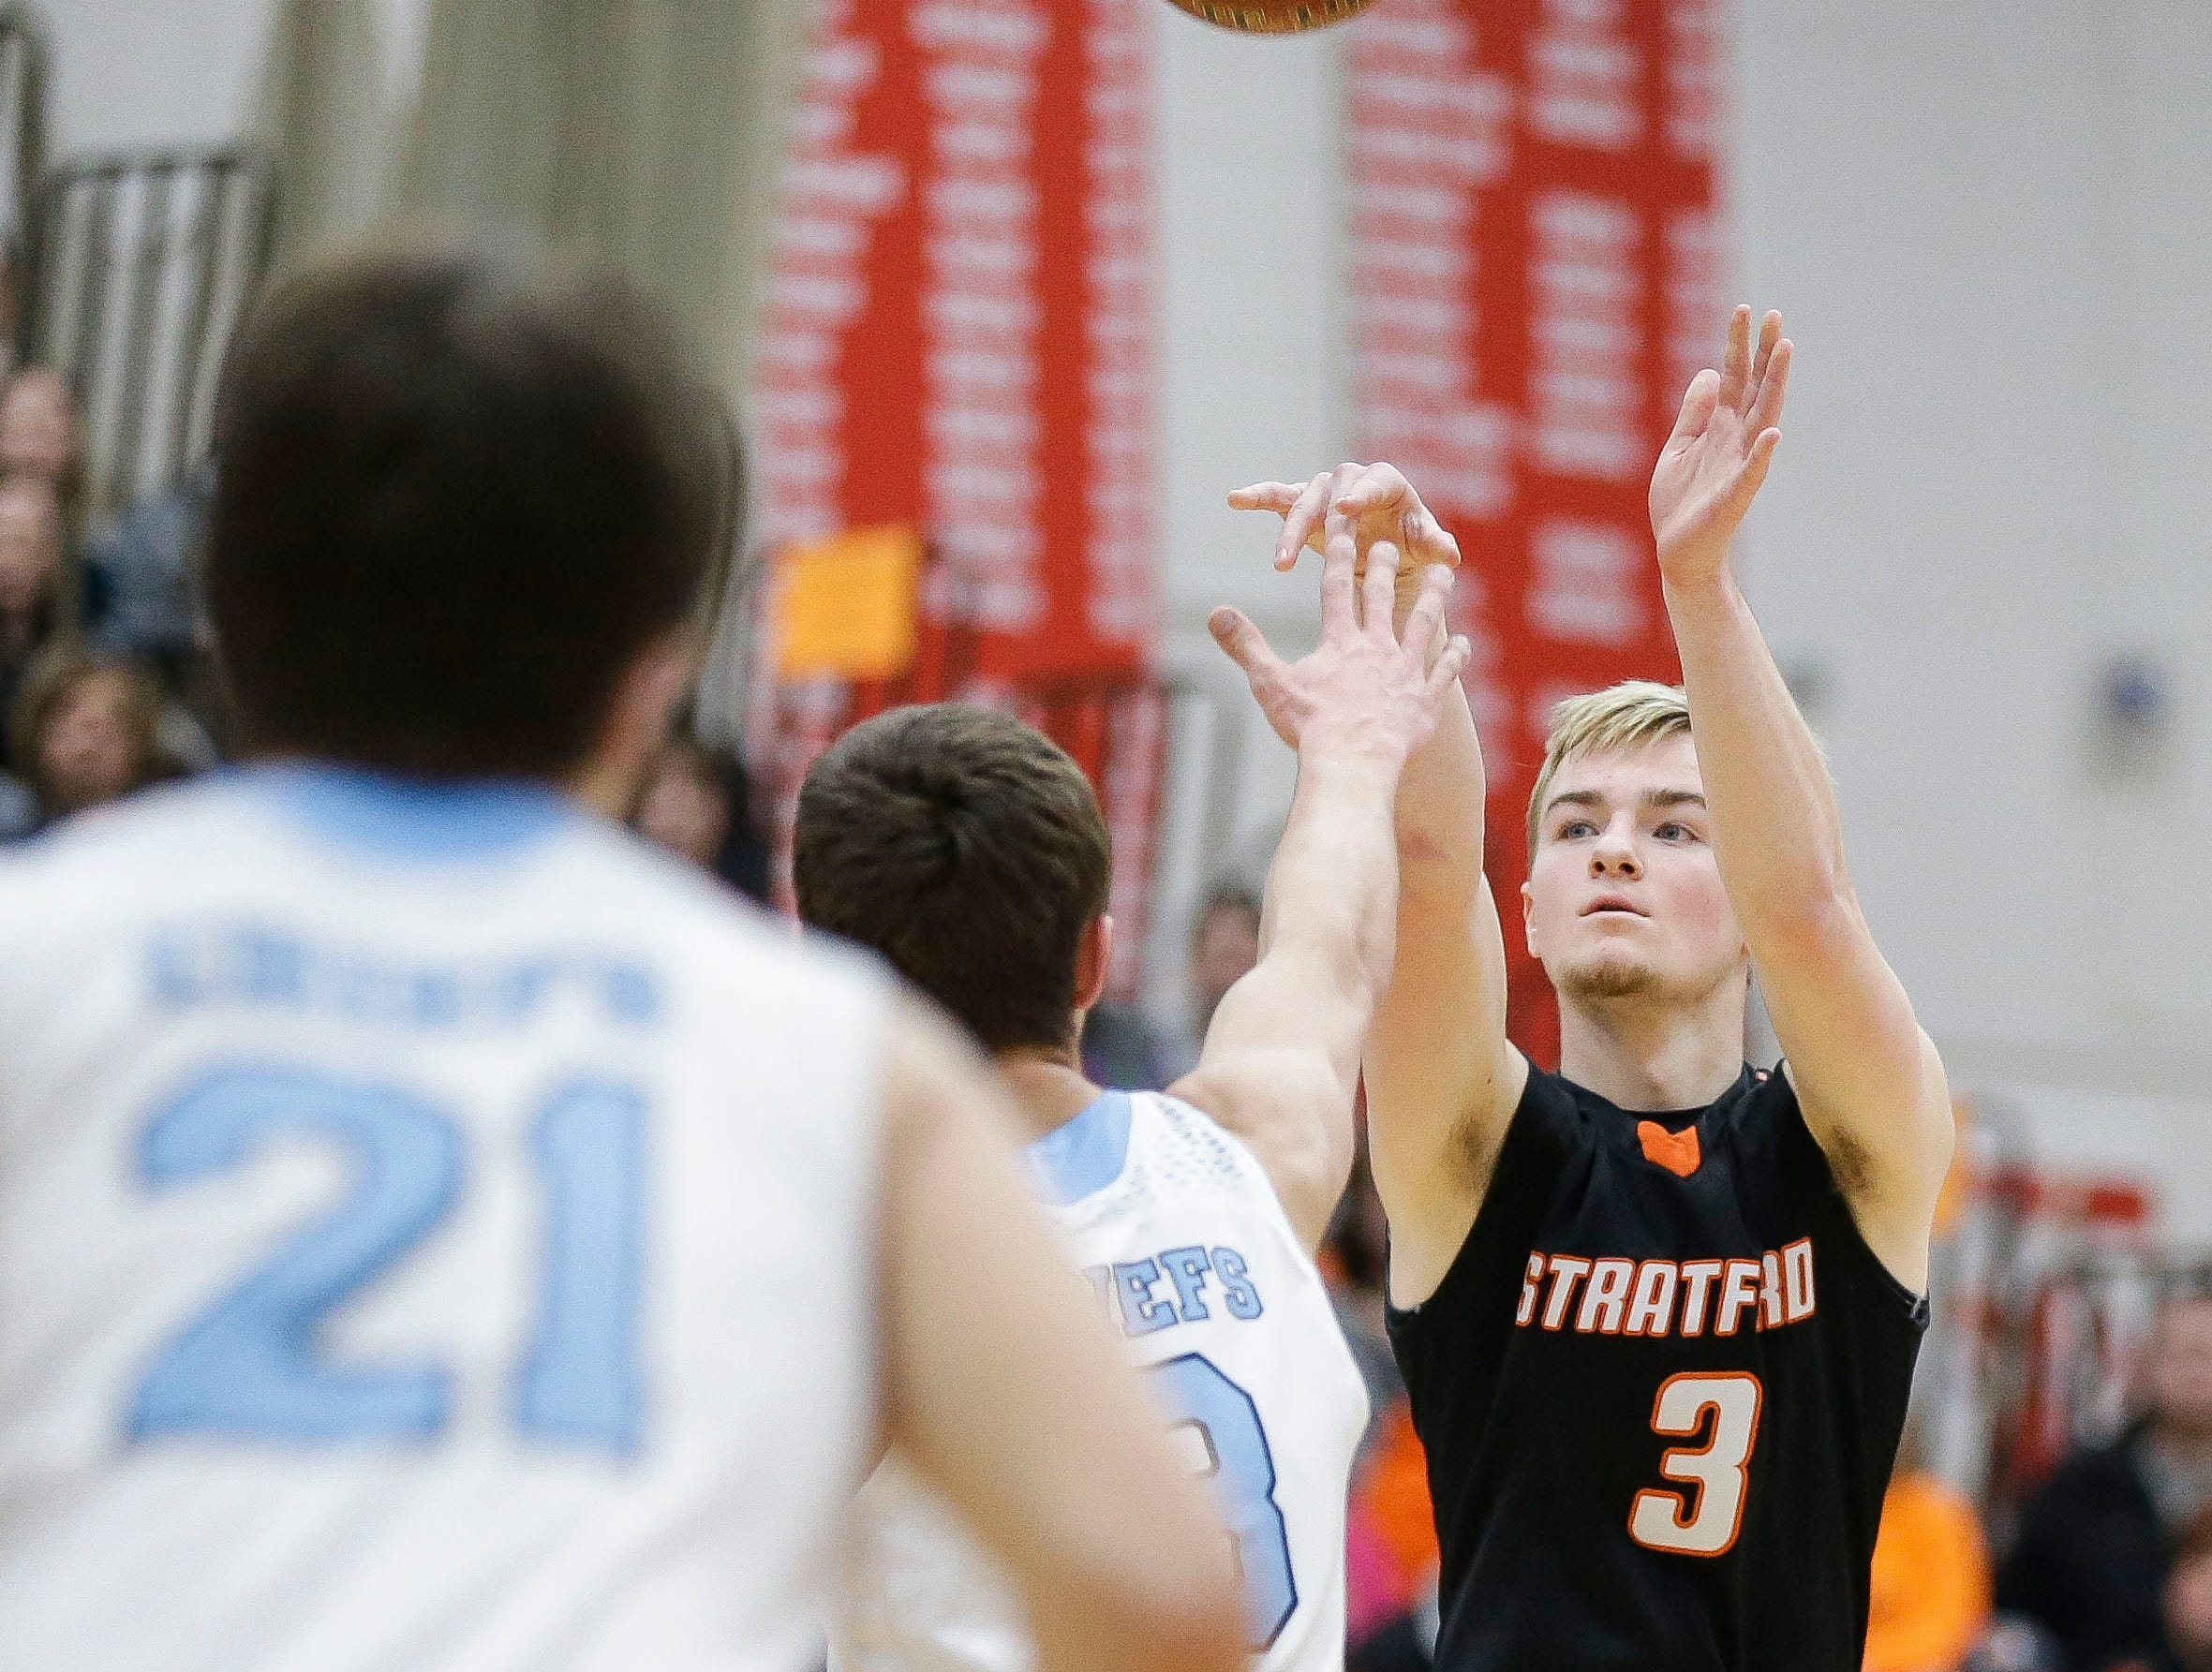 Stratford's Okley Wrensch (3) shoots a 3-pointer against Wisconsin Dells in a Division 3 sectional semifinal on Thursday, March 7, 2019, at Stevens Point Area High School in Stevens Point, Wis. Tork Mason/USA TODAY NETWORK-Wisconsin